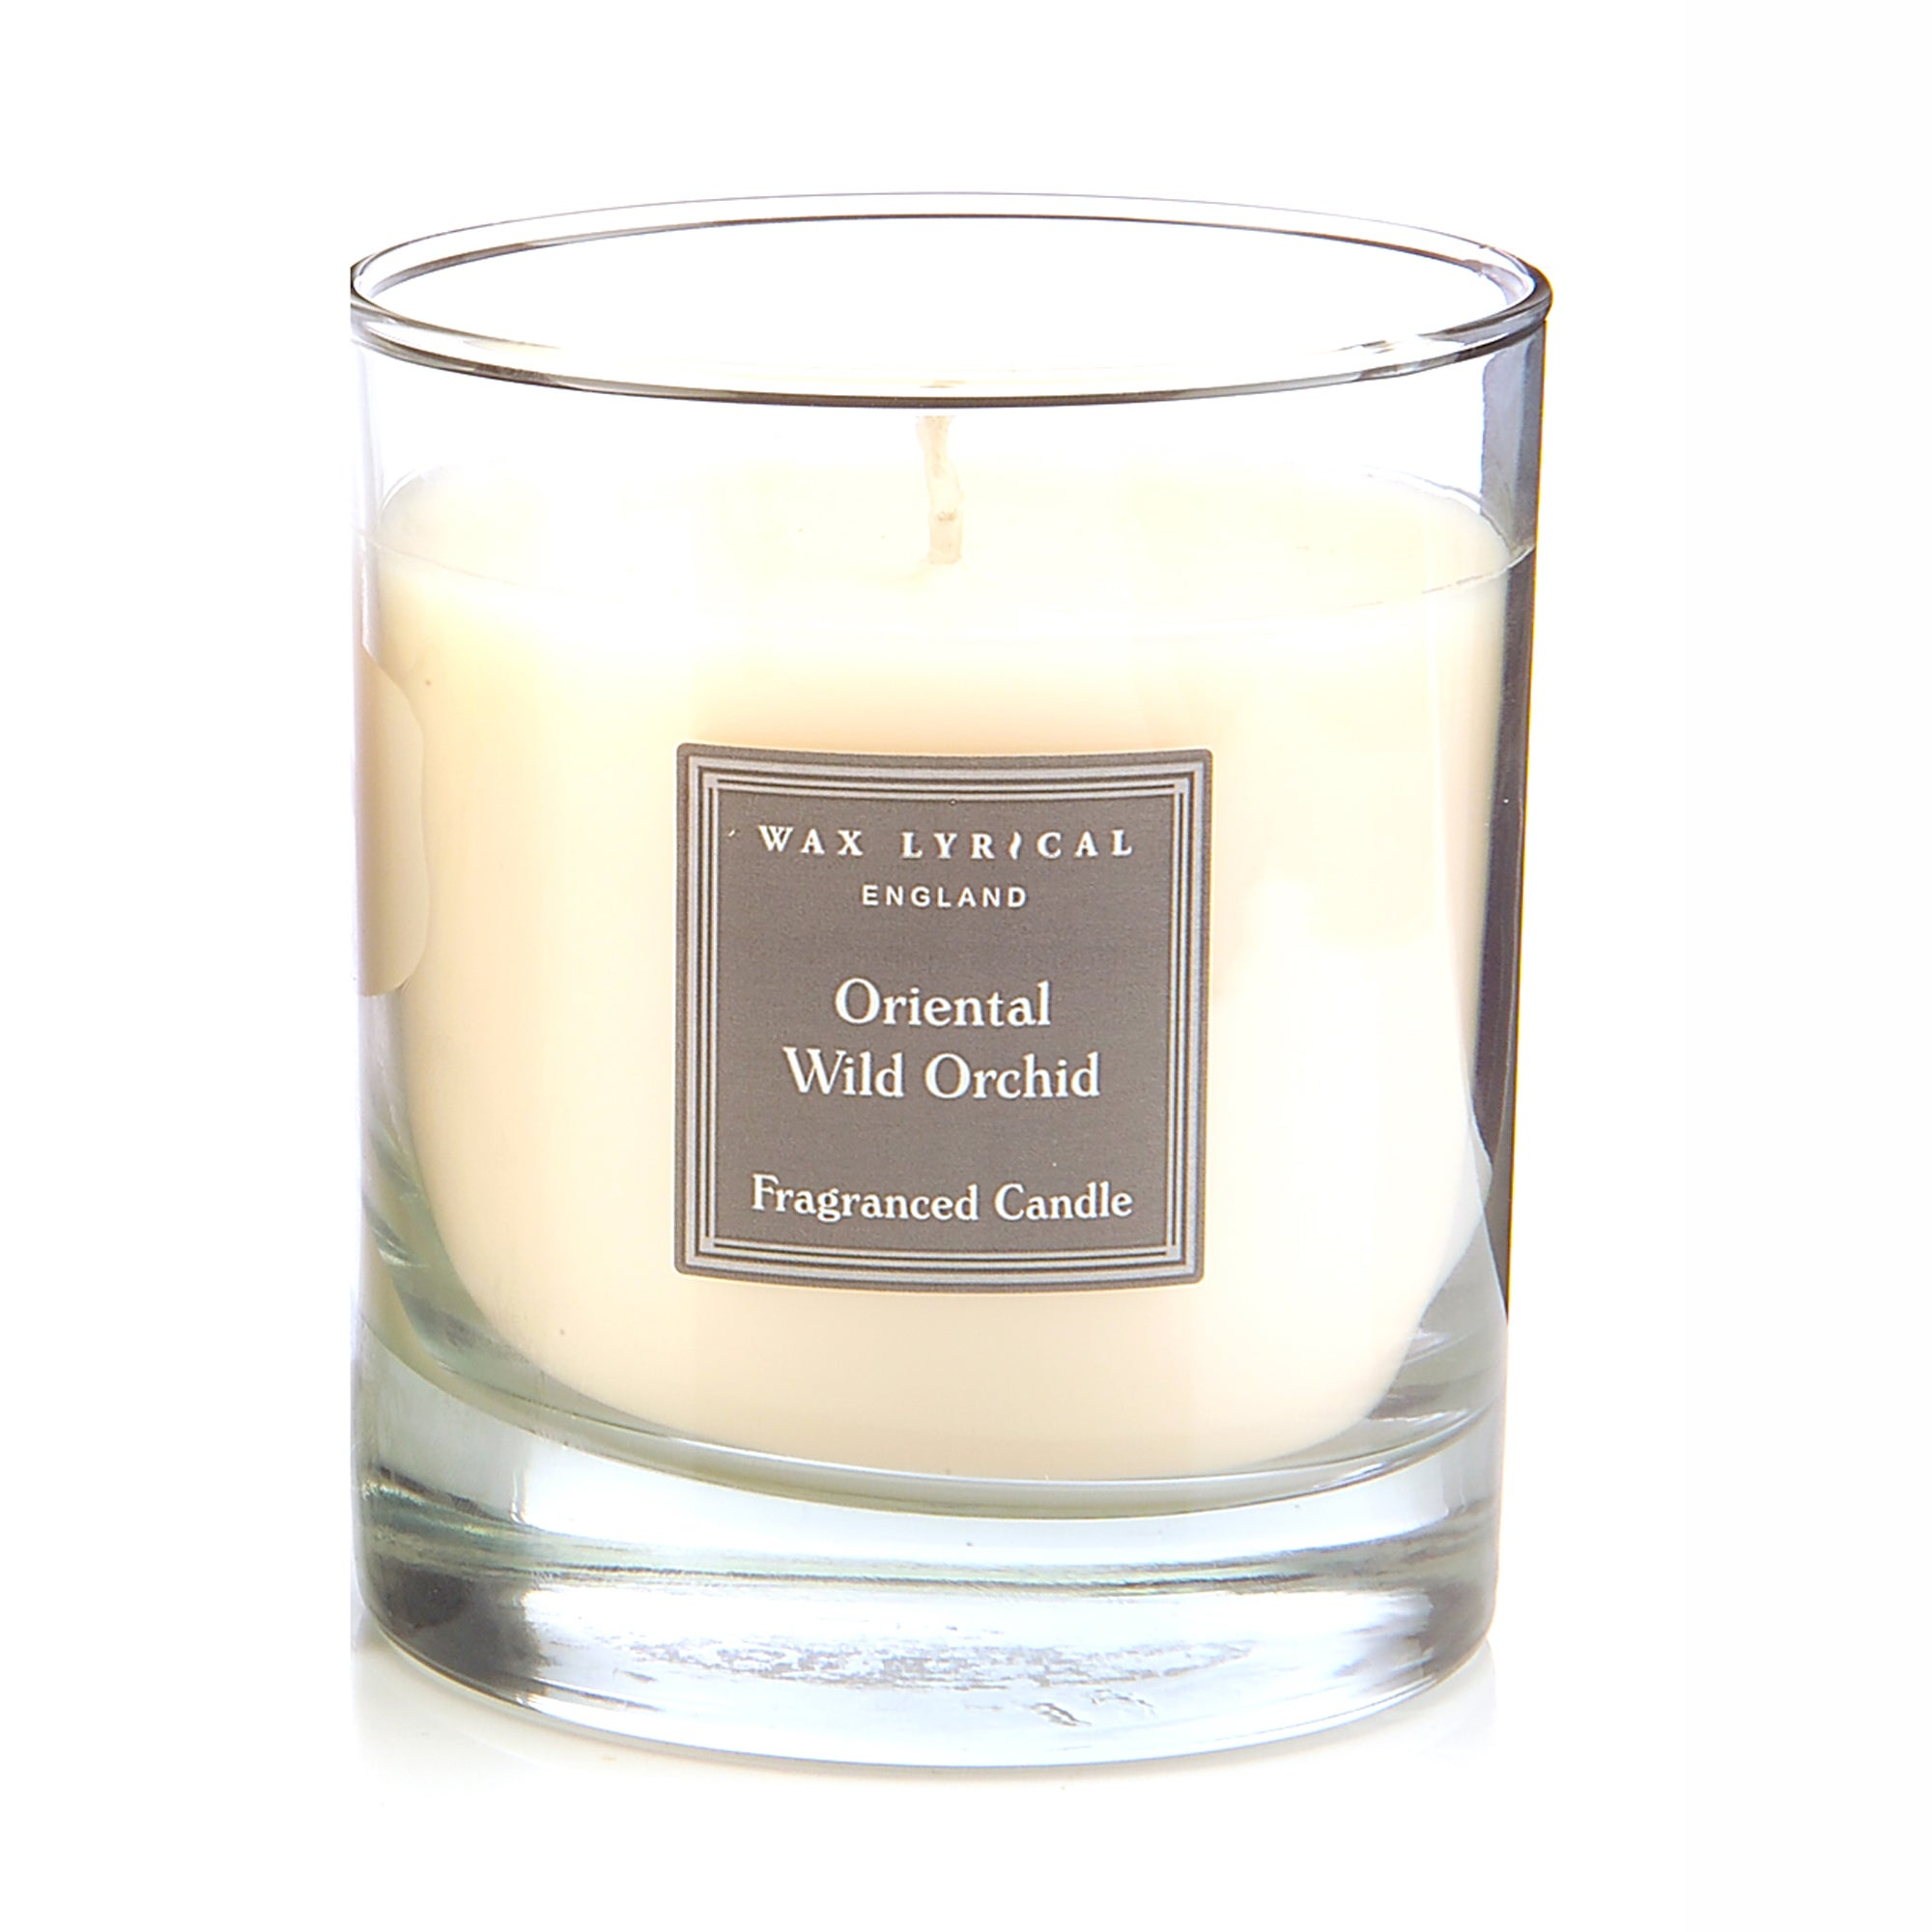 Wax Lyrical Wild Orchid Wax Filled Glass Candle